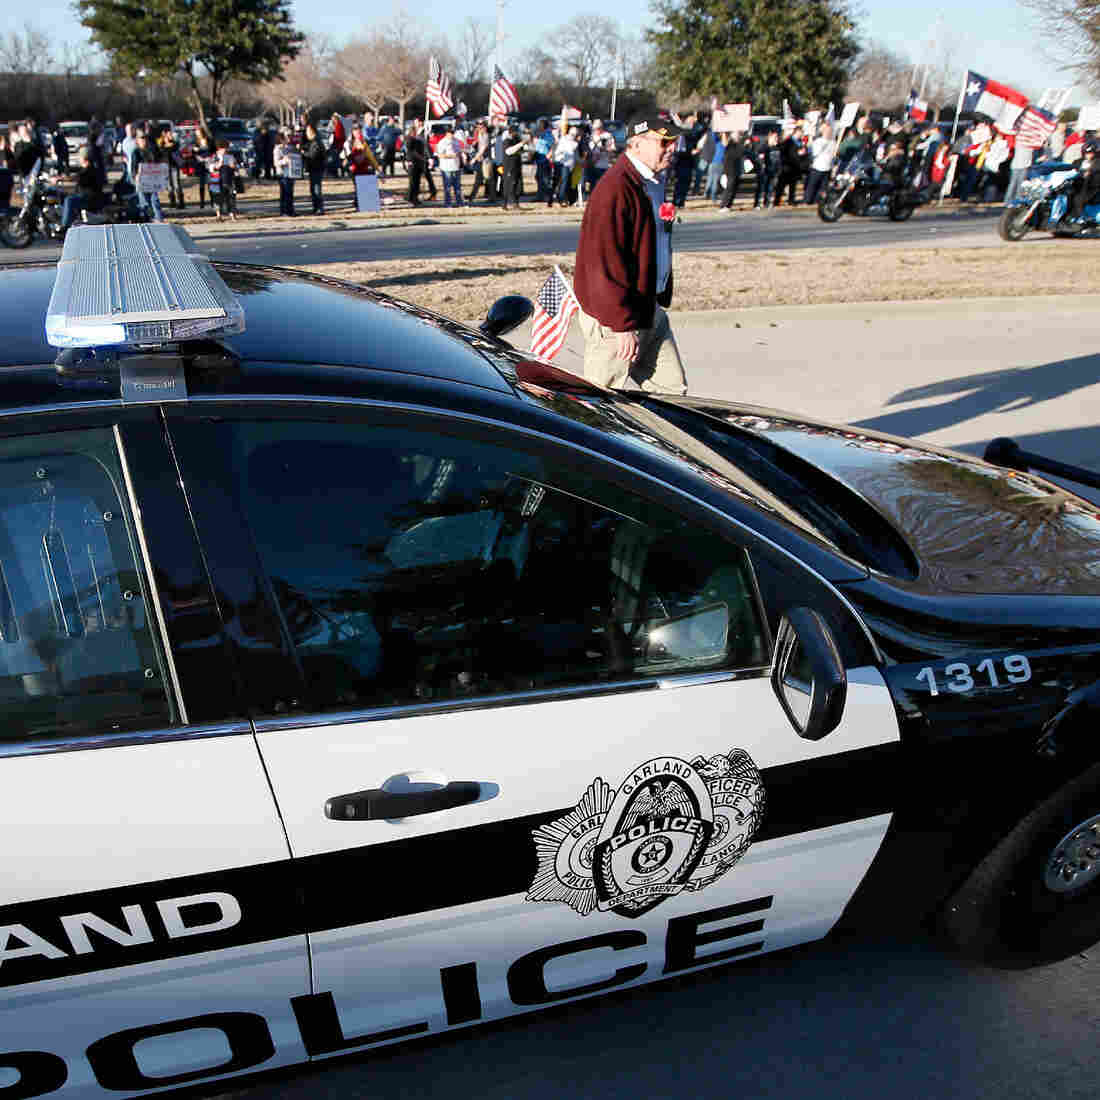 Nearly 1,000 protesters gather in January across the street from the Curtis Culwell Center in Garland, Texas, where a Muslim conference against hate and terrorism was scheduled to be held.